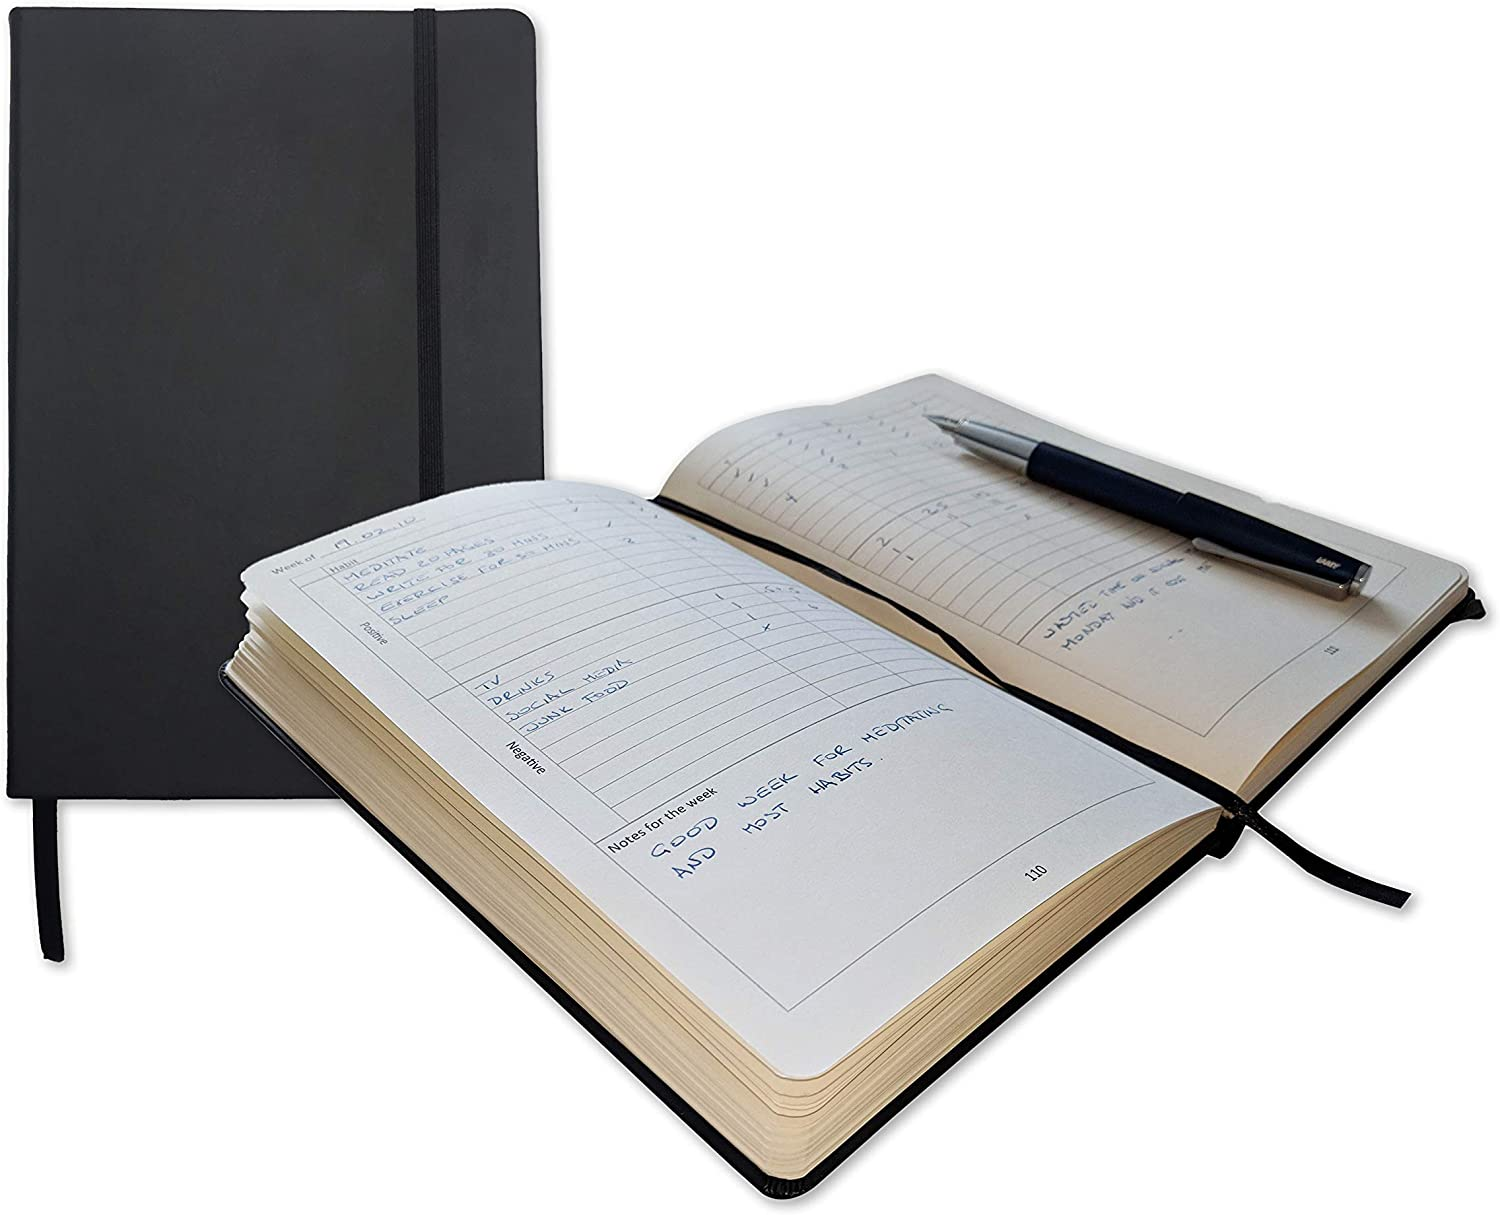 Habit Tracker and Journal by Max 70% OFF Quality Daily NTBK Cheap mail order shopping - Premium